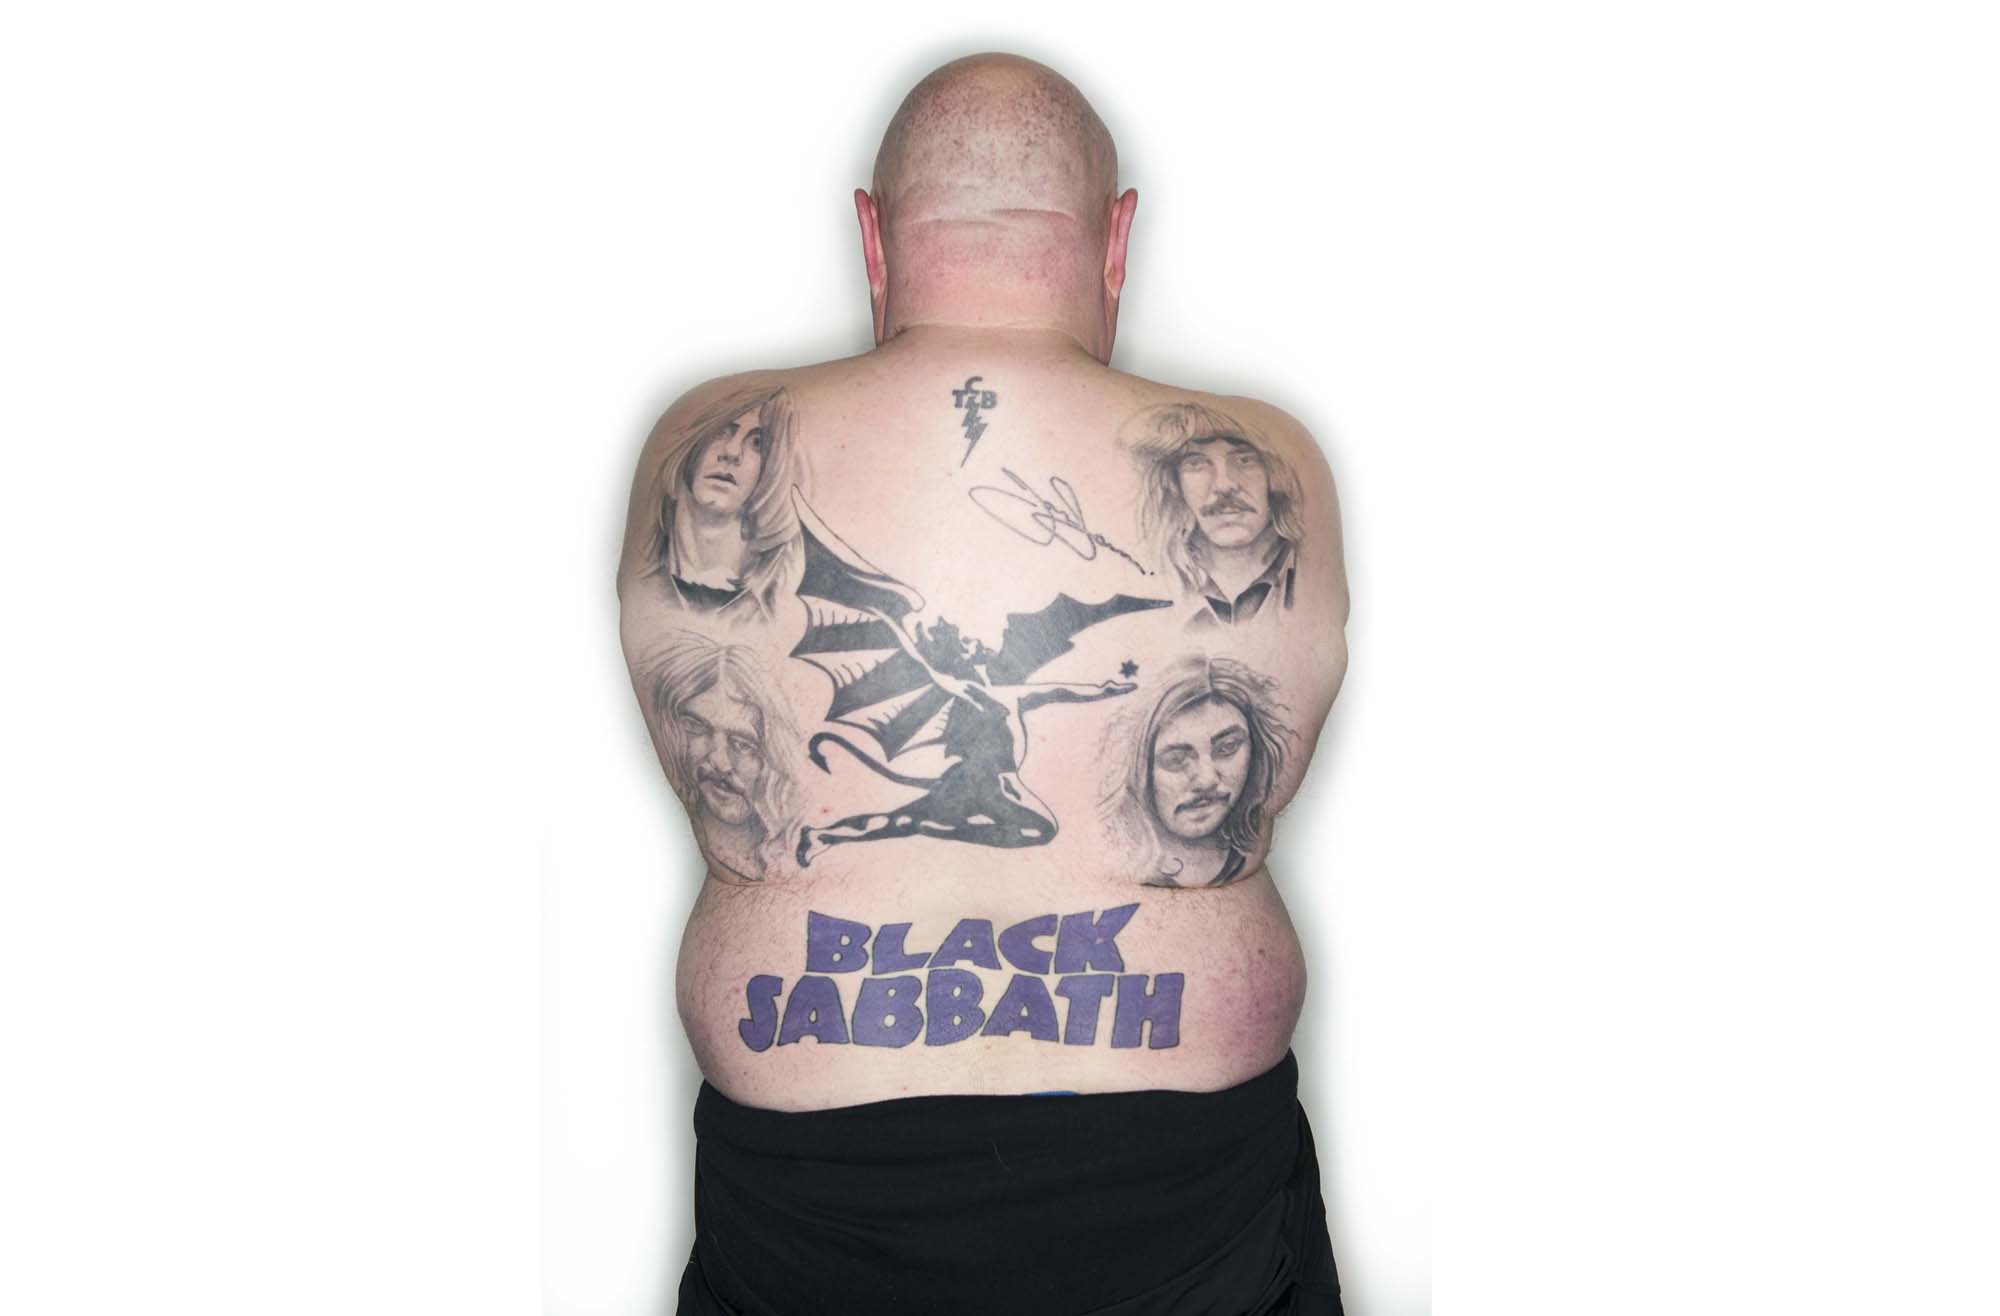 a photo of the back of bald man featuring tattooed portraits of the original members of Black Sabbath